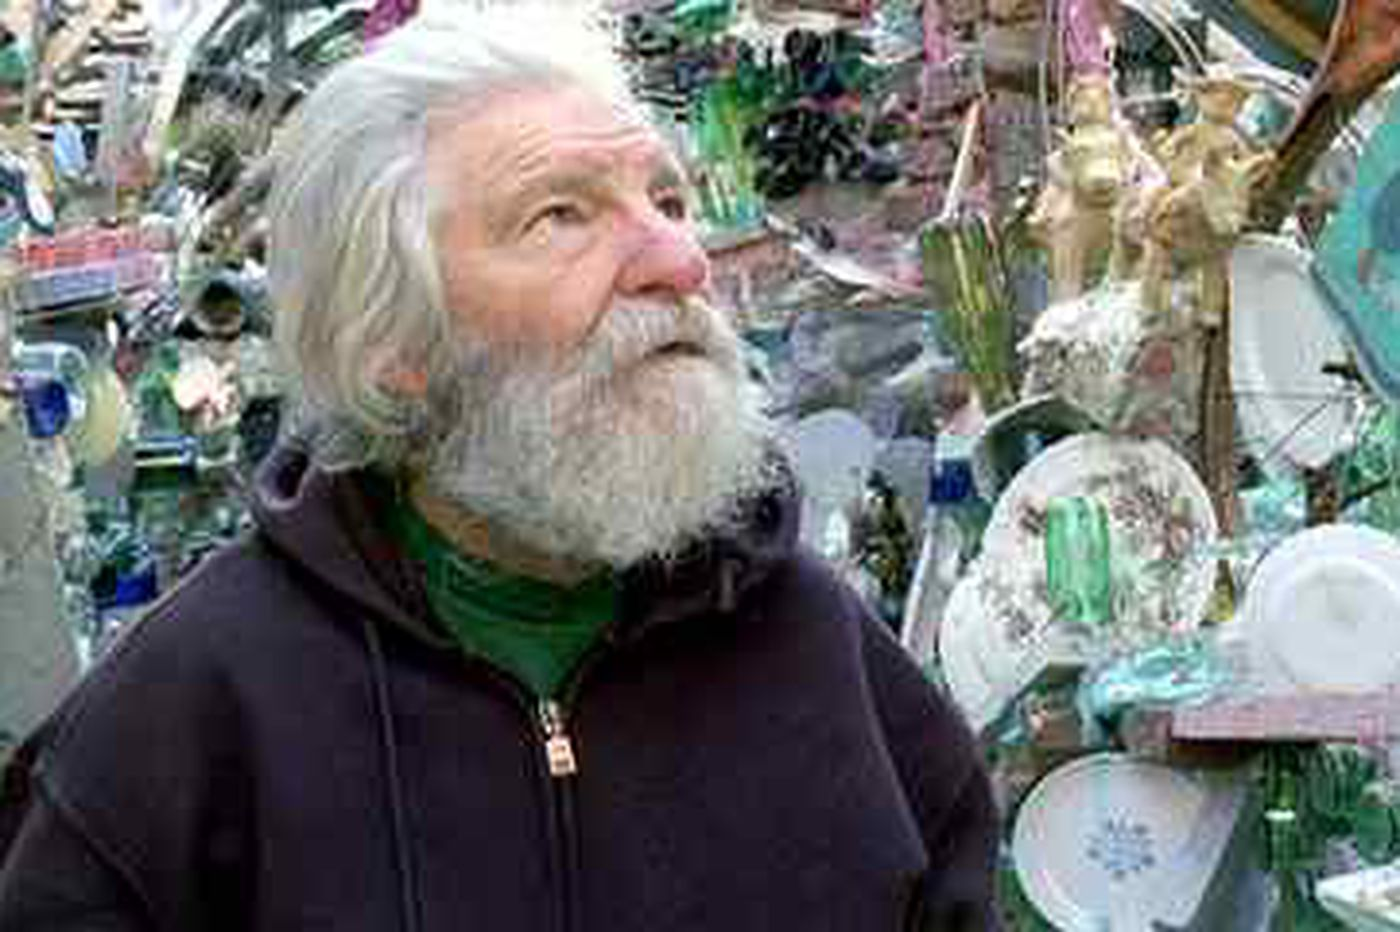 Magic Gardens creator Isaiah Zagar turns 80 on Monday — and you're invited to celebrate